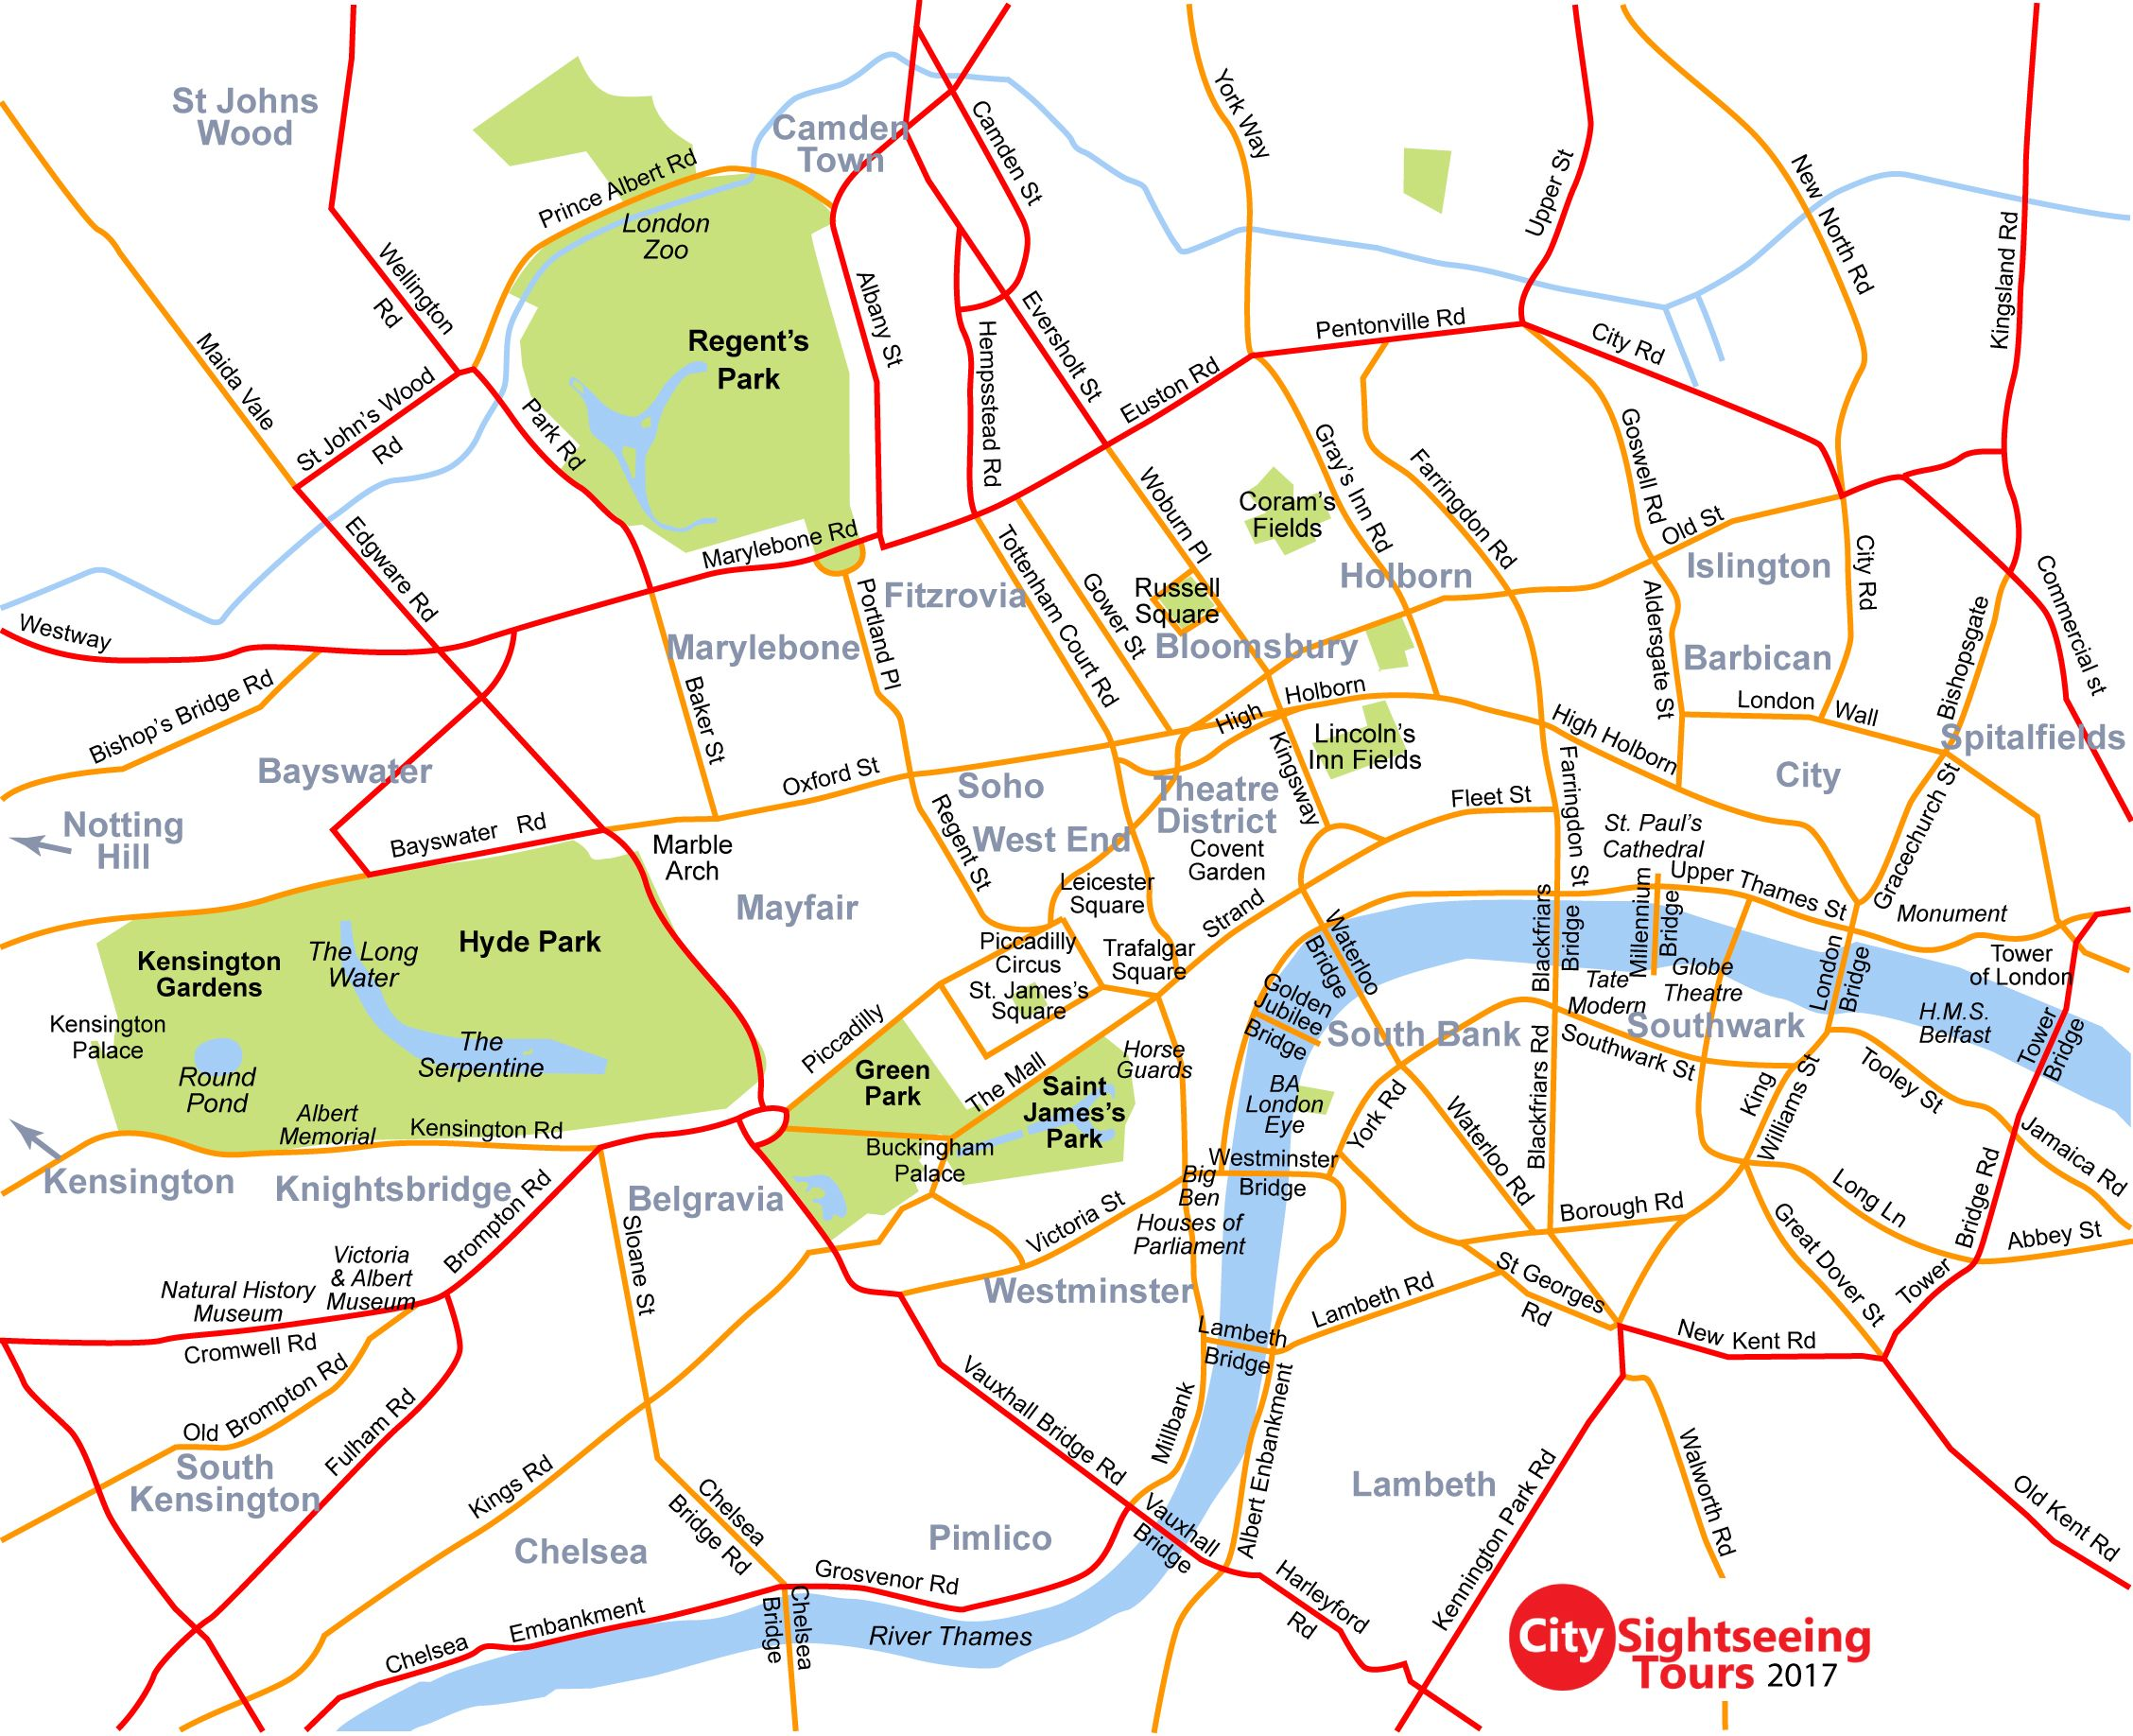 Map Of London With Neighborhoods.Map Of London Neighborhoods London Neighborhood Map With List Of